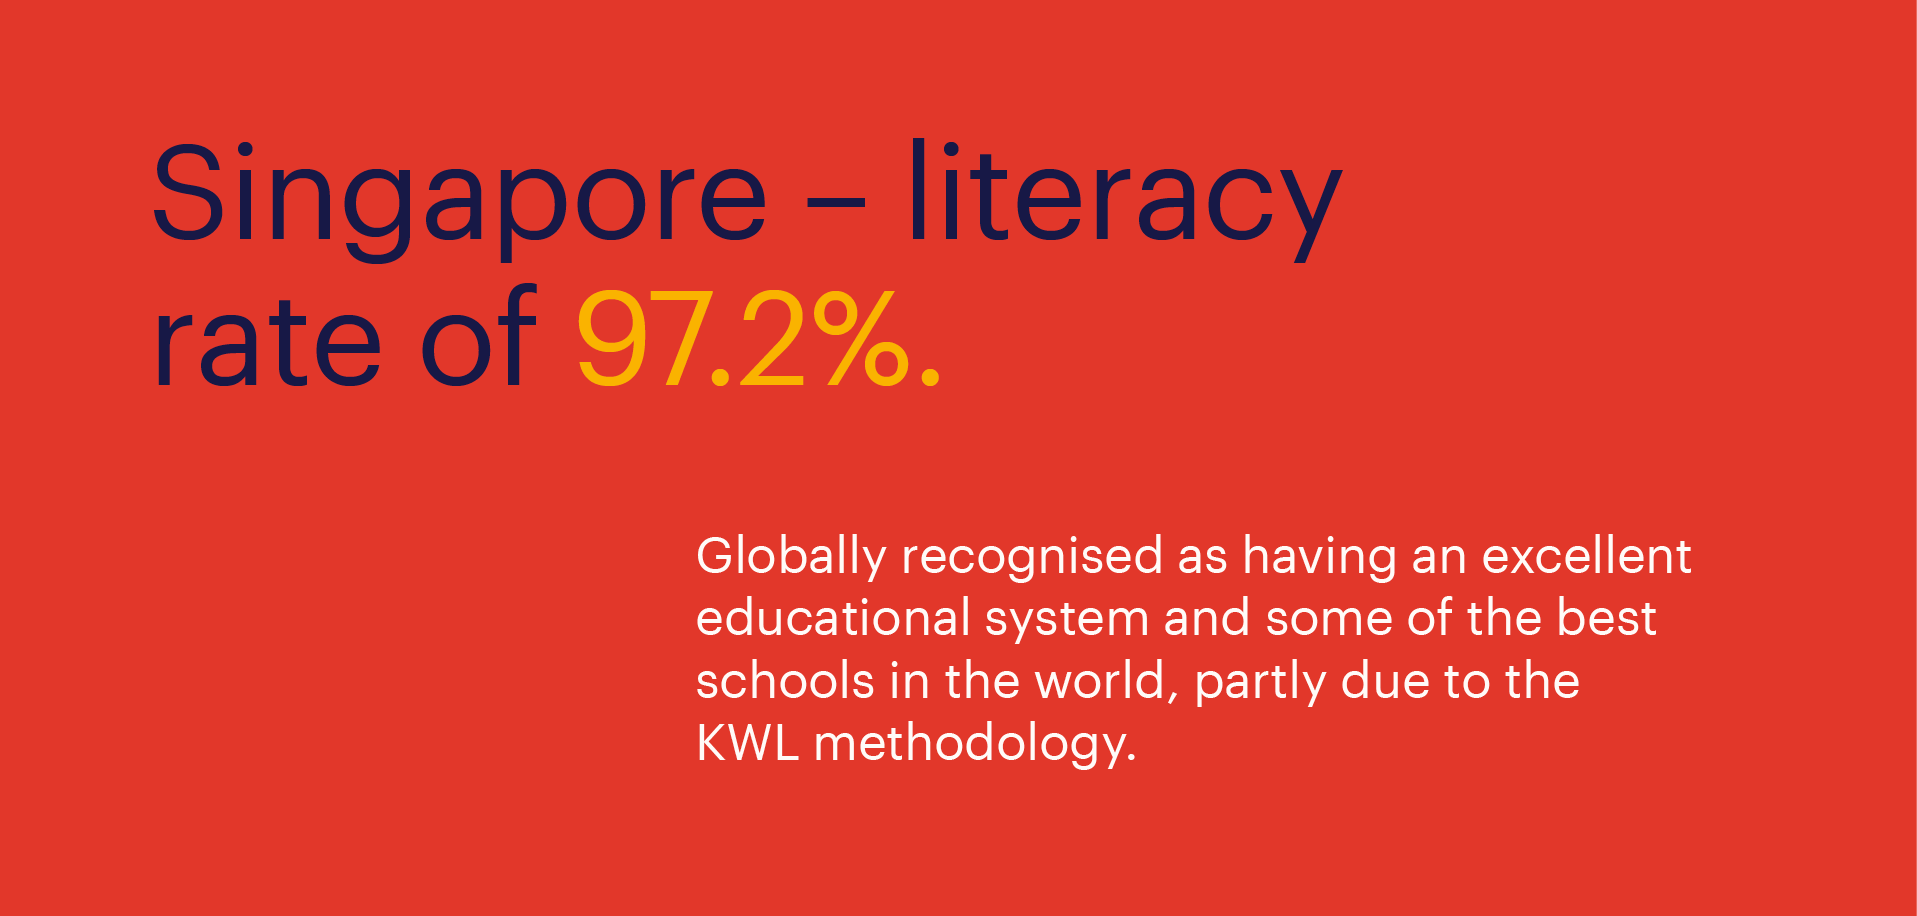 Singapore has a literacy rate of 97.2%.